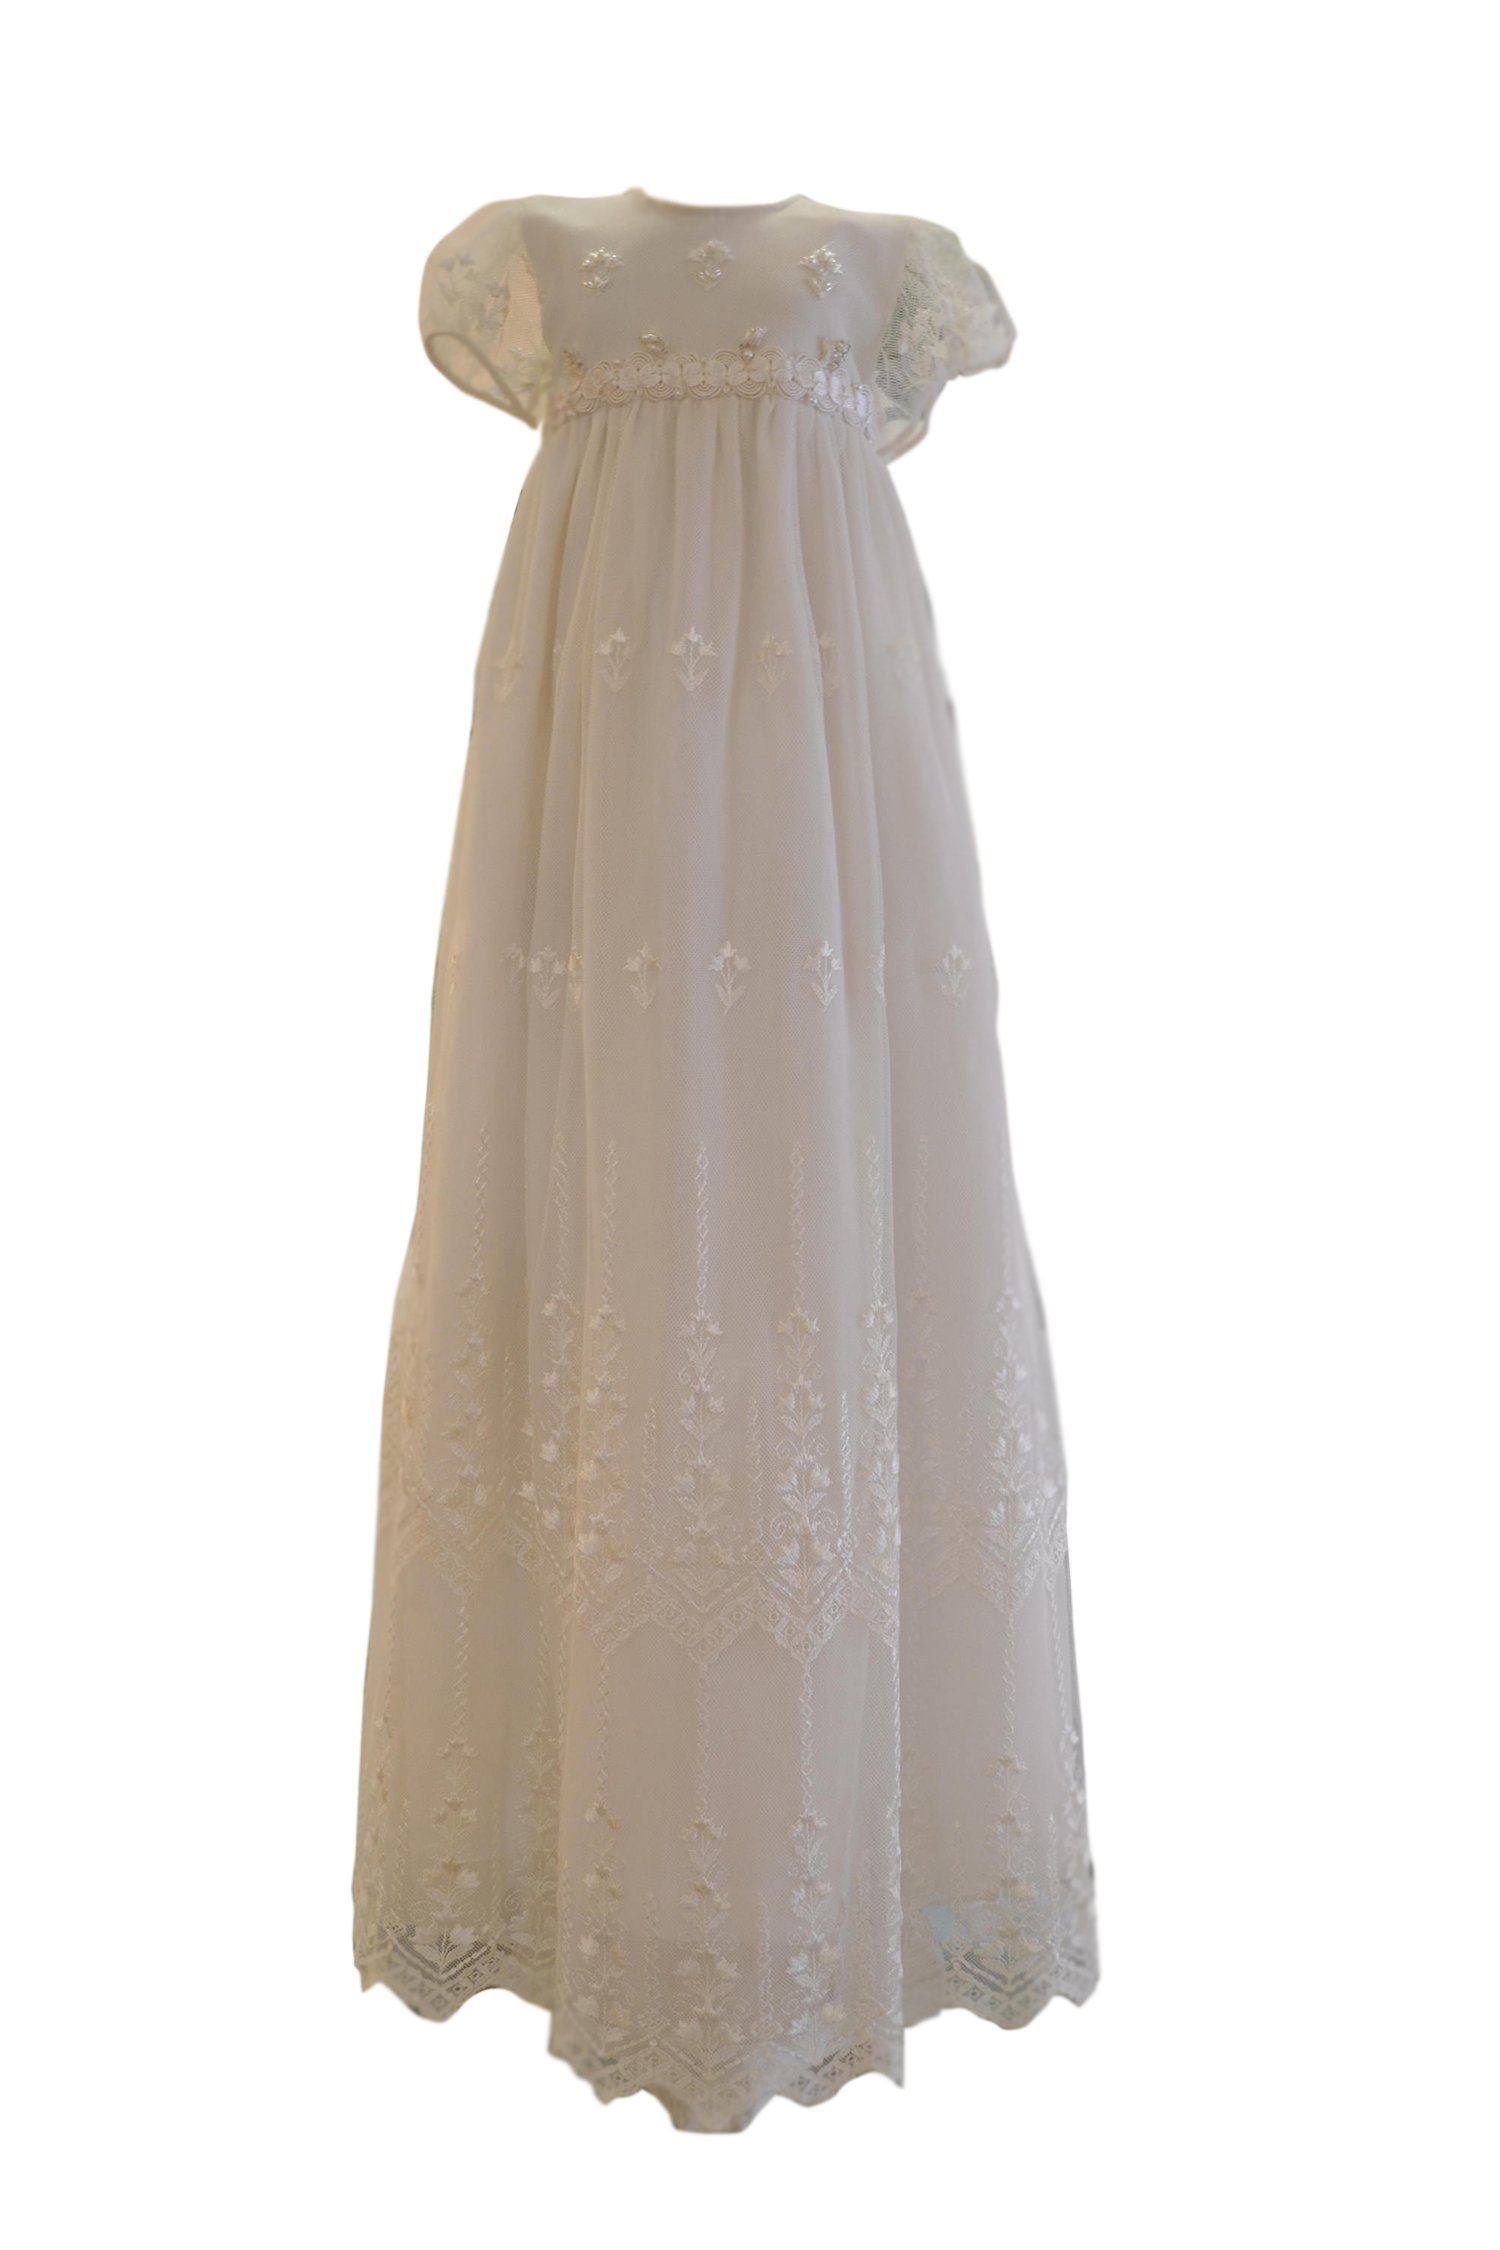 New Deve Newdeve Baby's White Tulle Cotton Inner Embroidery Floral Beading Long Christening Baptism Gown (White, Preemie)